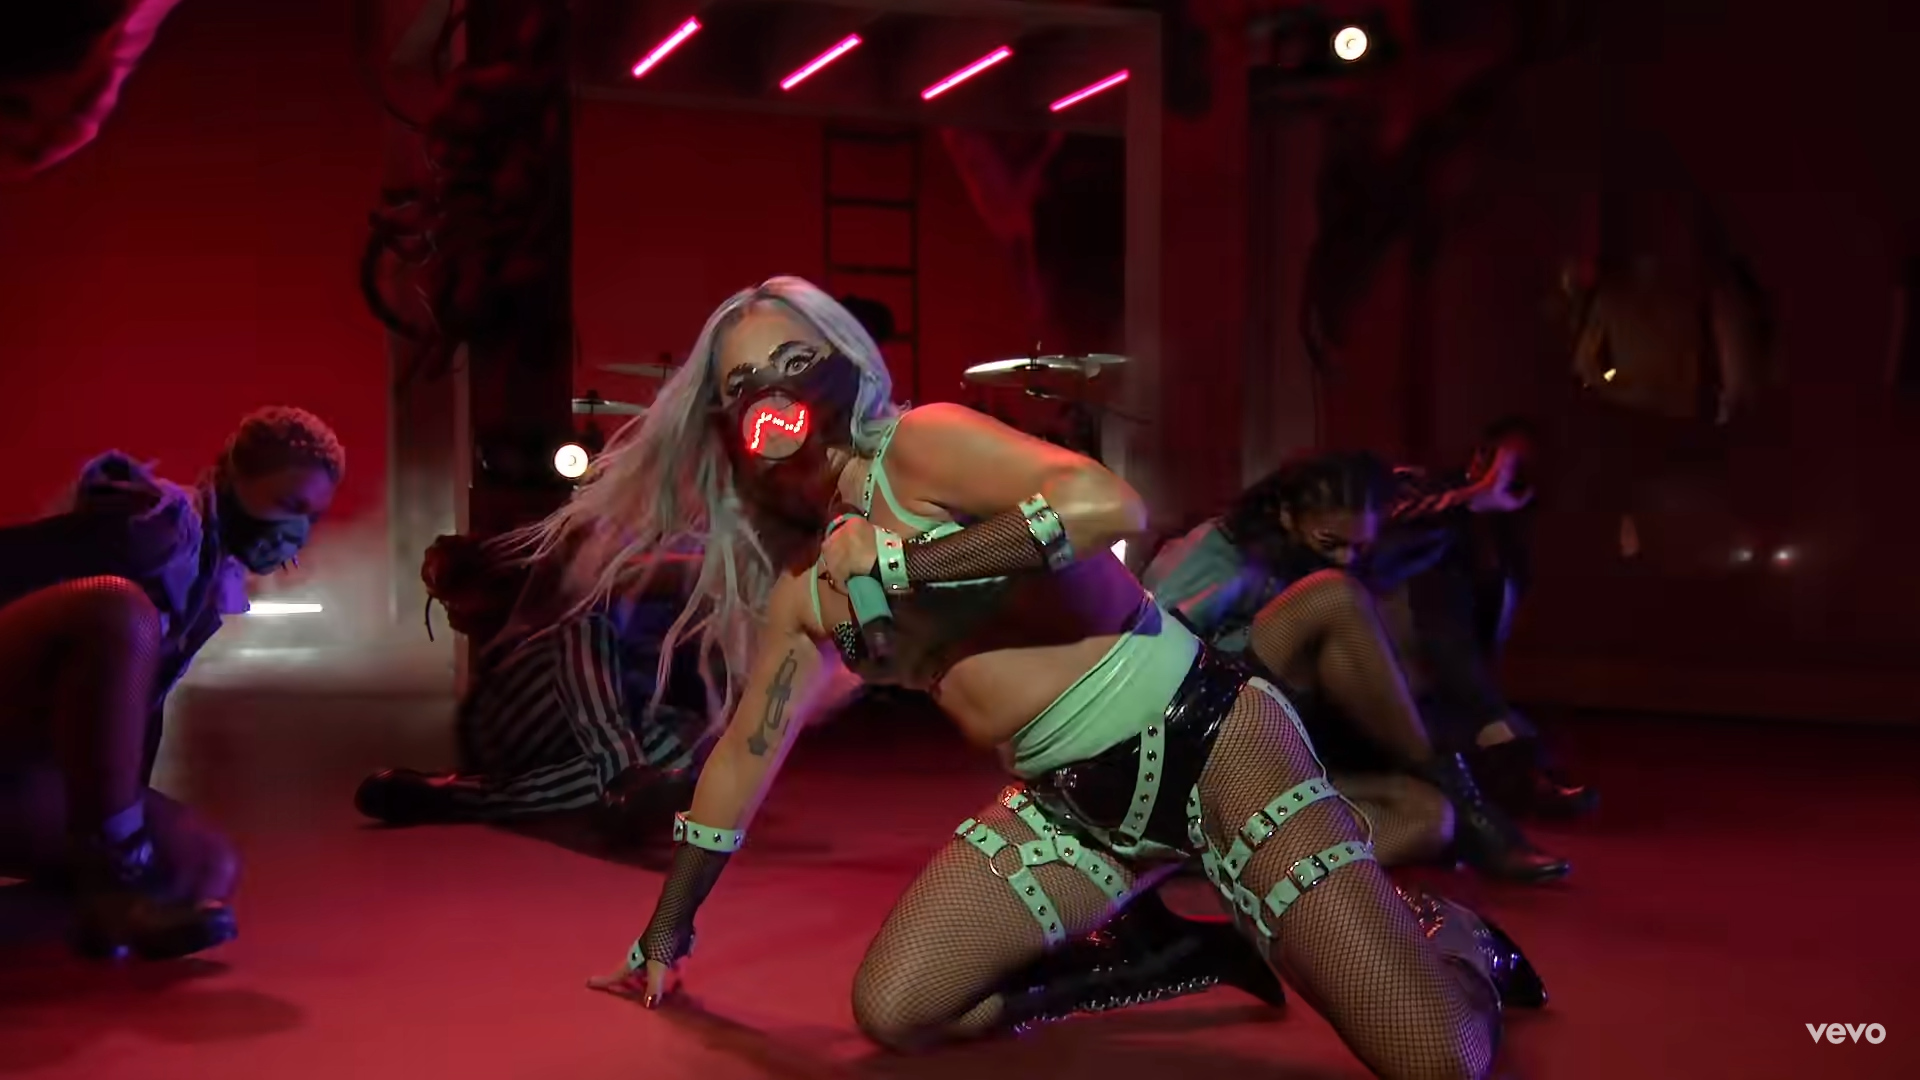 Lady Gaga performing with the sound reactive mask made by Smooth Technology in collaboration with Diego Montoya. Screenshot from her 2020 VMA performance.